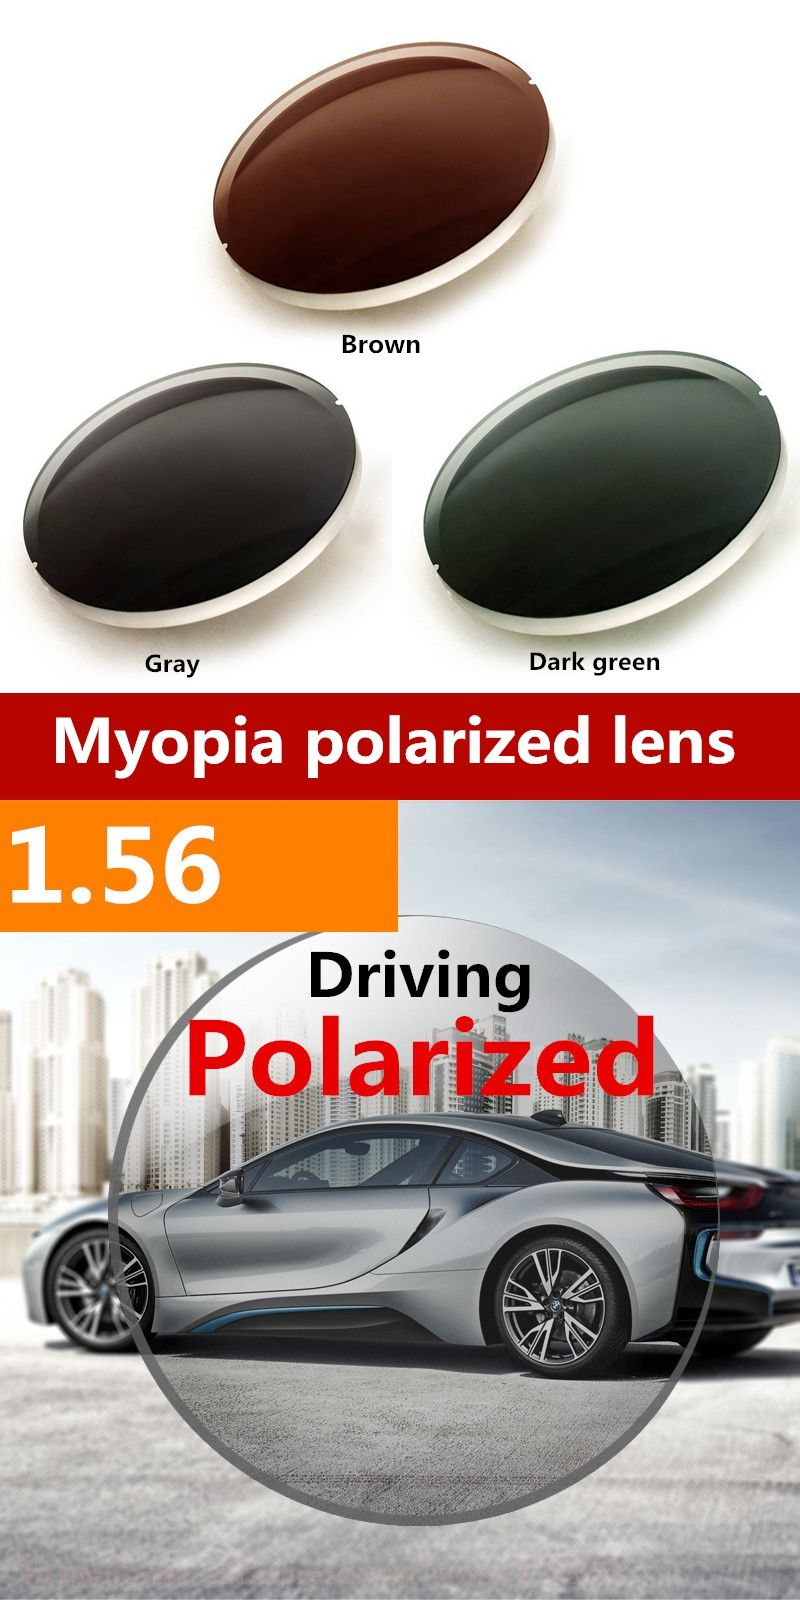 1.56 Men Women Myopic Polarized Lenses Driving Fishing Outdoors With ...